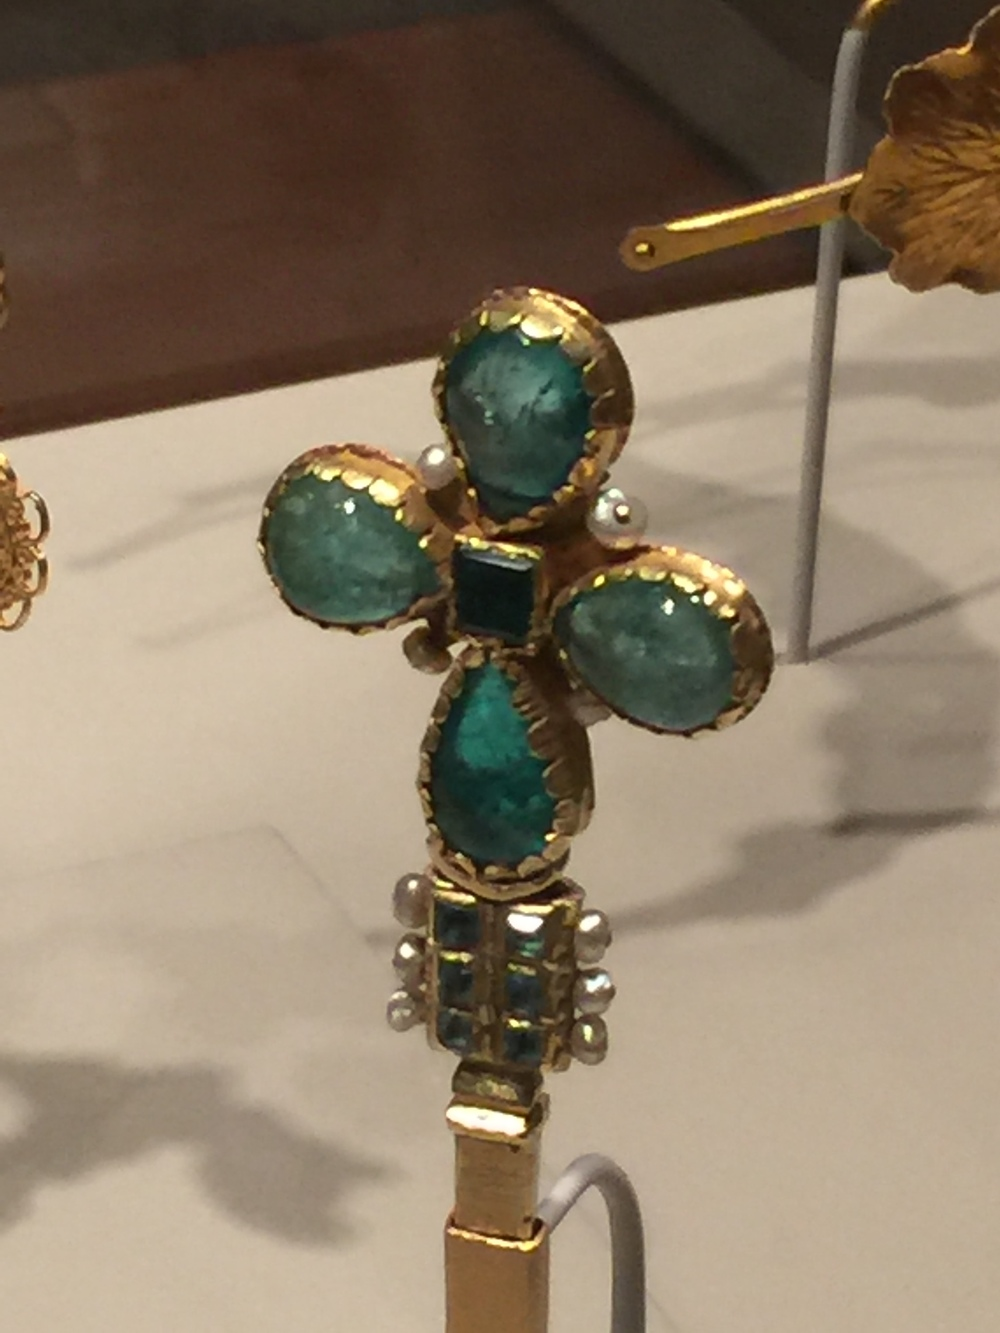 Cross finial, Colombia or Ecuador, circa 1600. Gold, emeralds, pearls. Denver Art Museum, Gift of the Stapleton Foundation of Latin American Colonial Art made possible by the Renchard family; 1990.526.